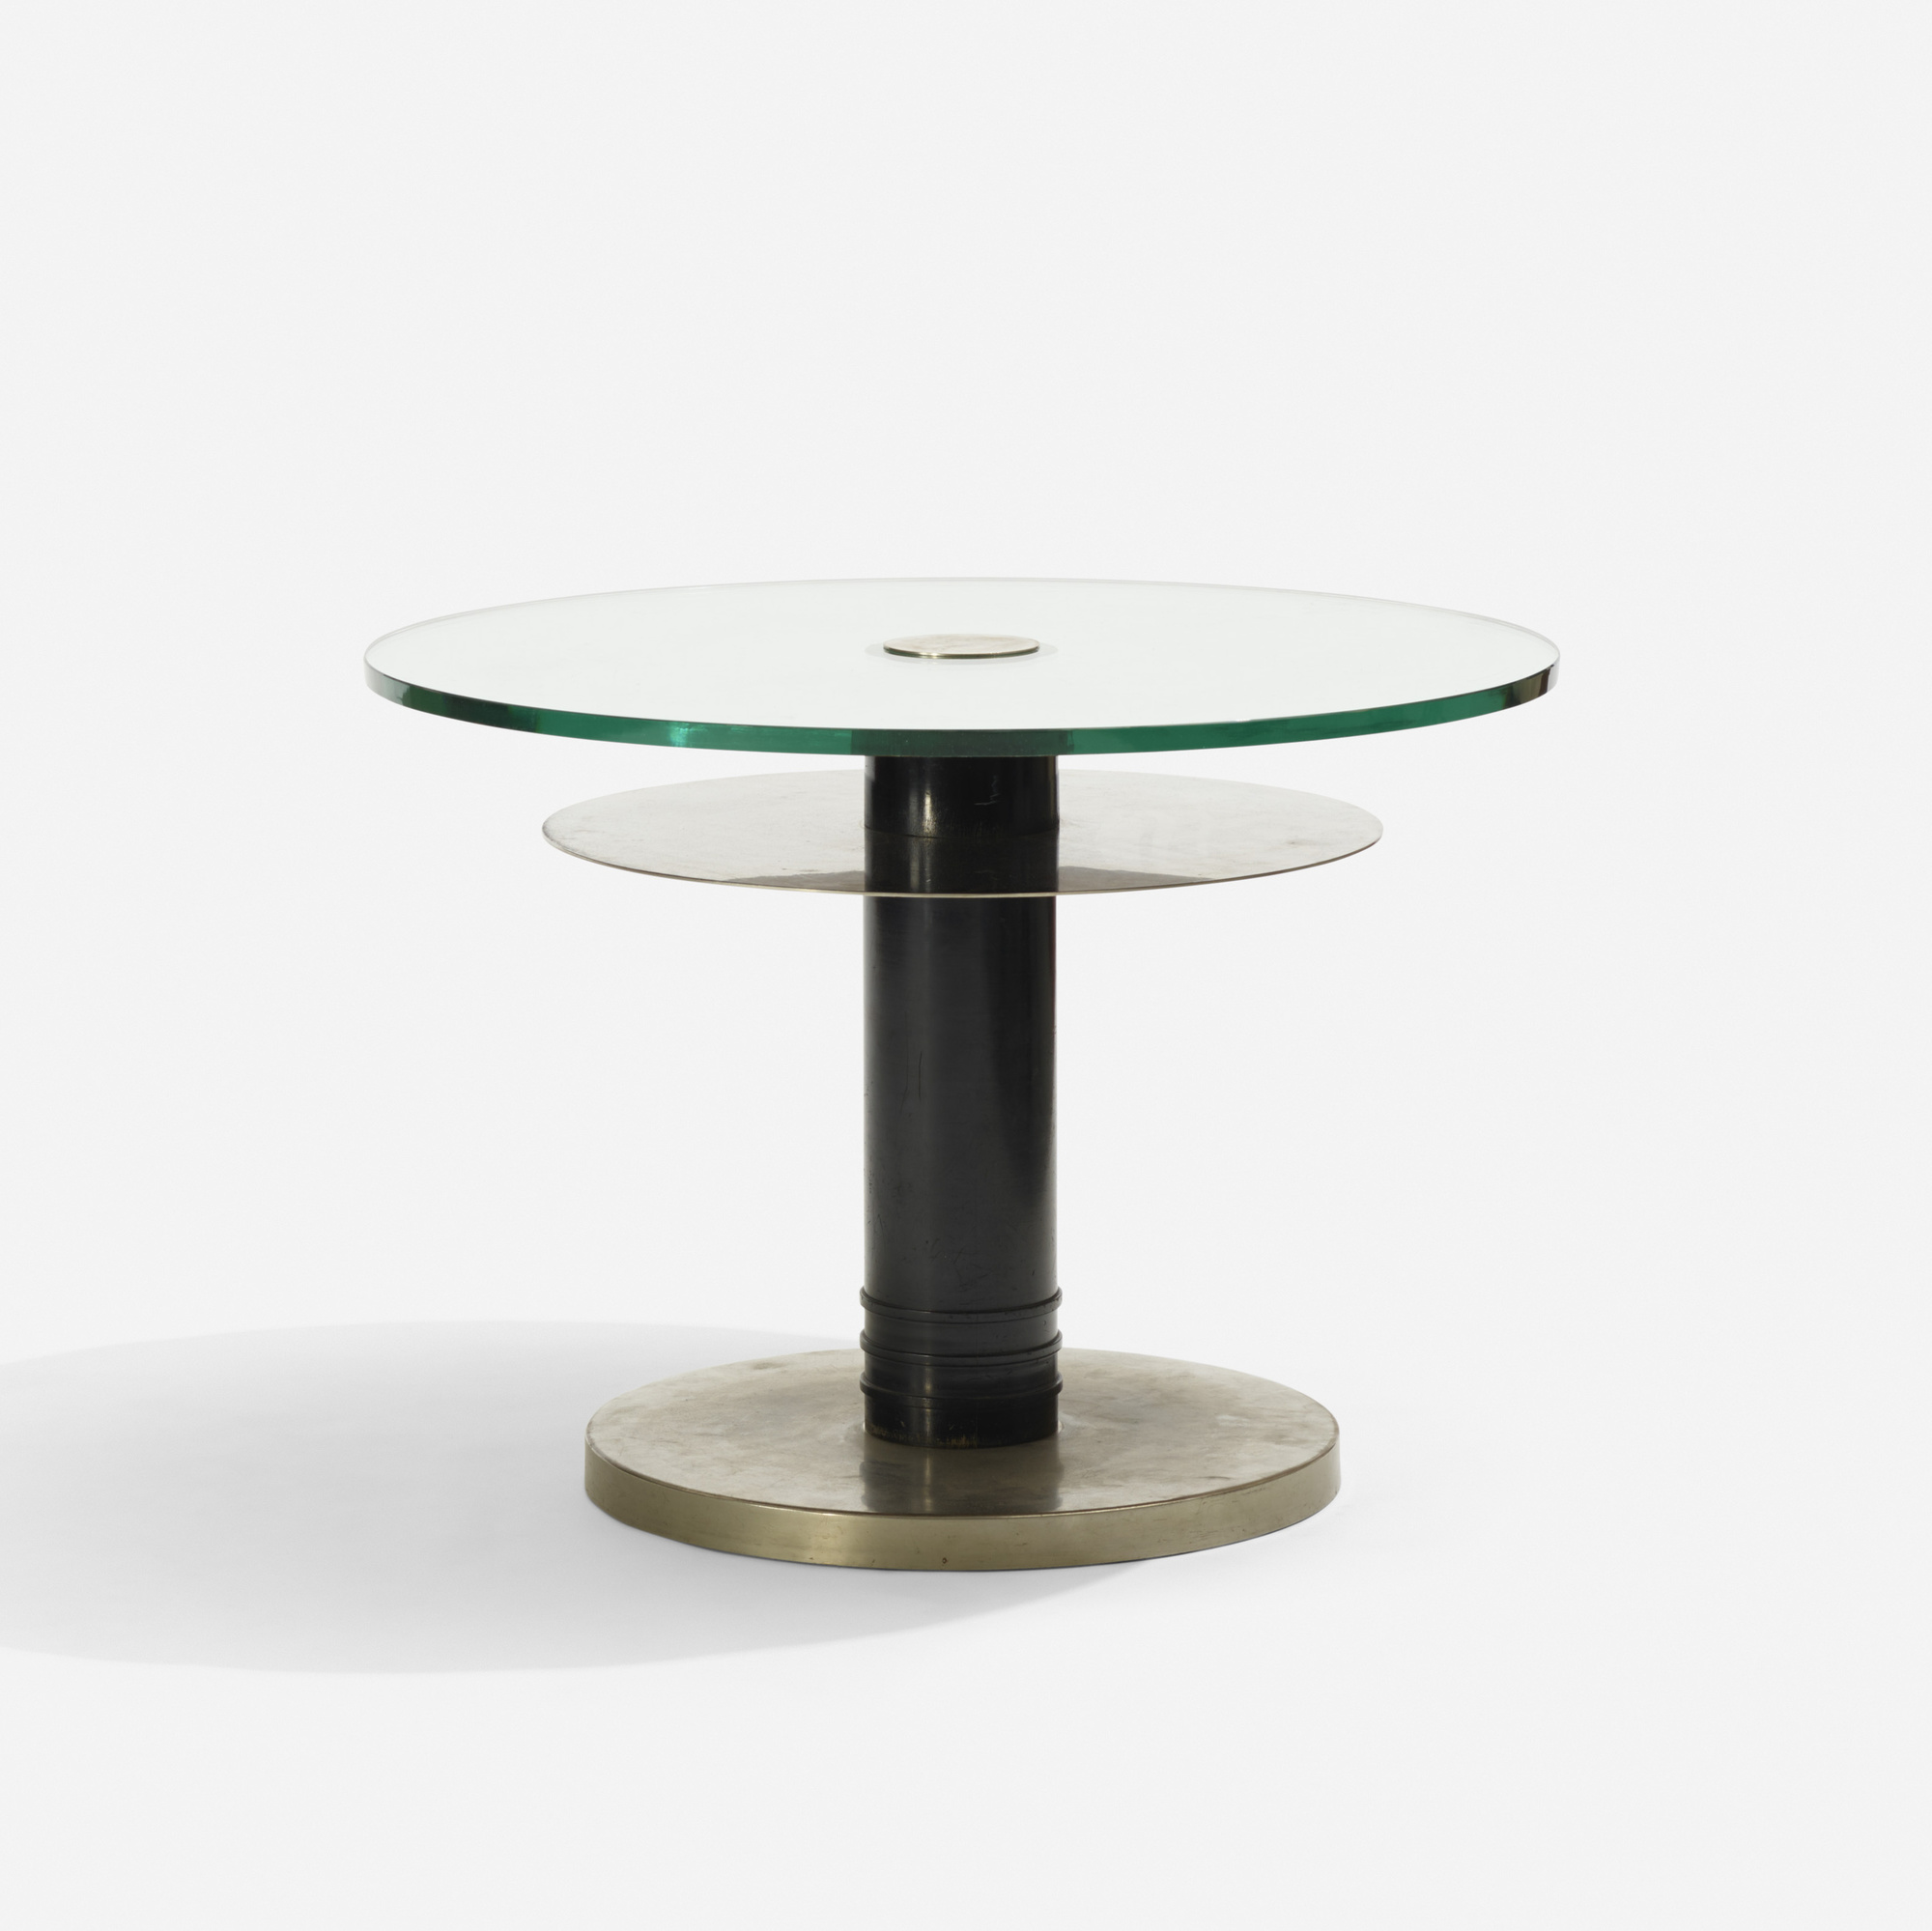 123: Axel Einar Hjorth / Typenko occasional table (1 of 2)